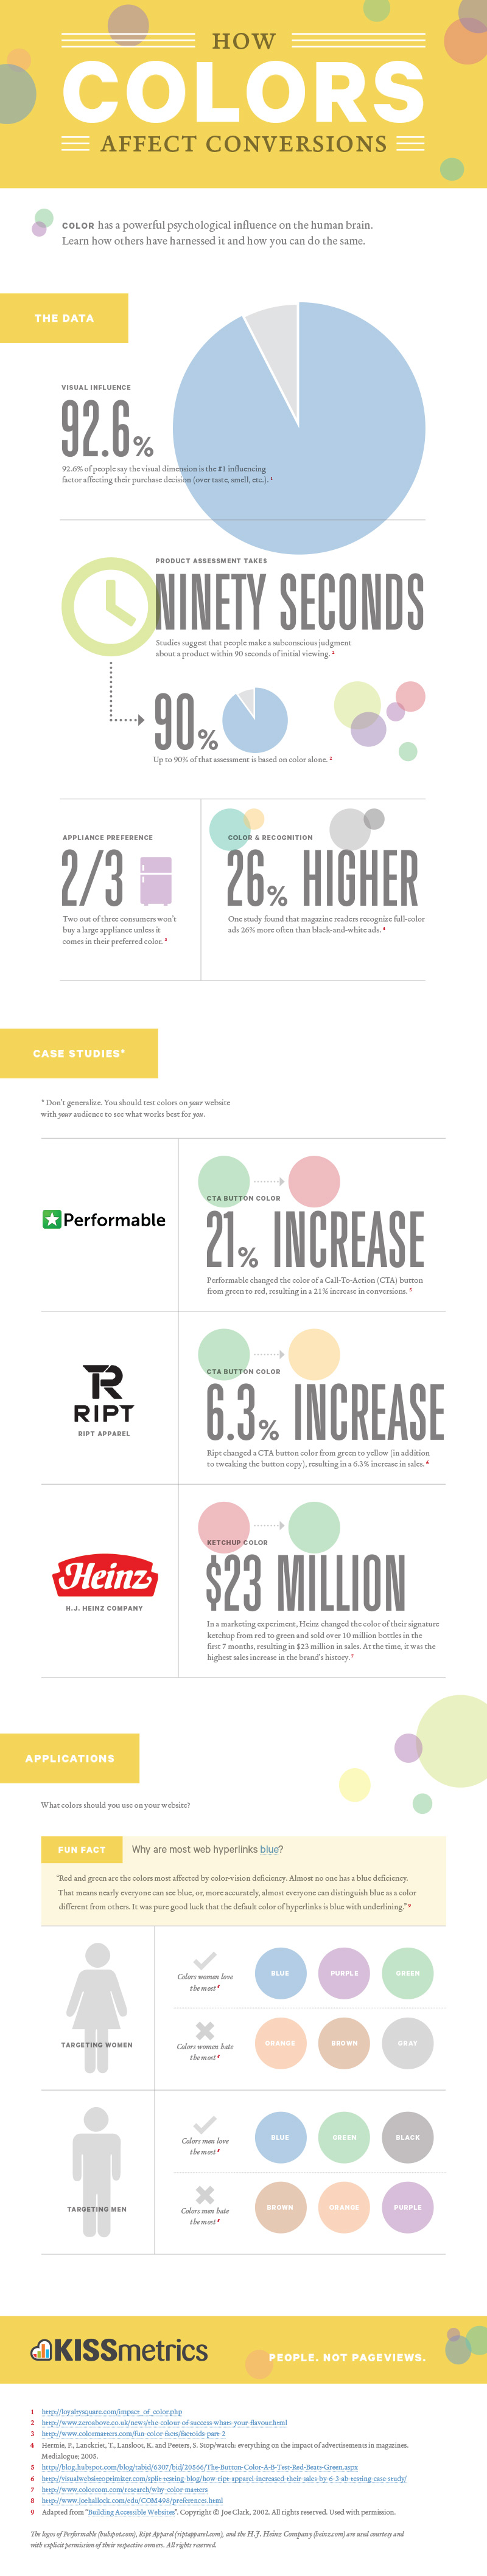 Infographic How Colors Affect Conversions